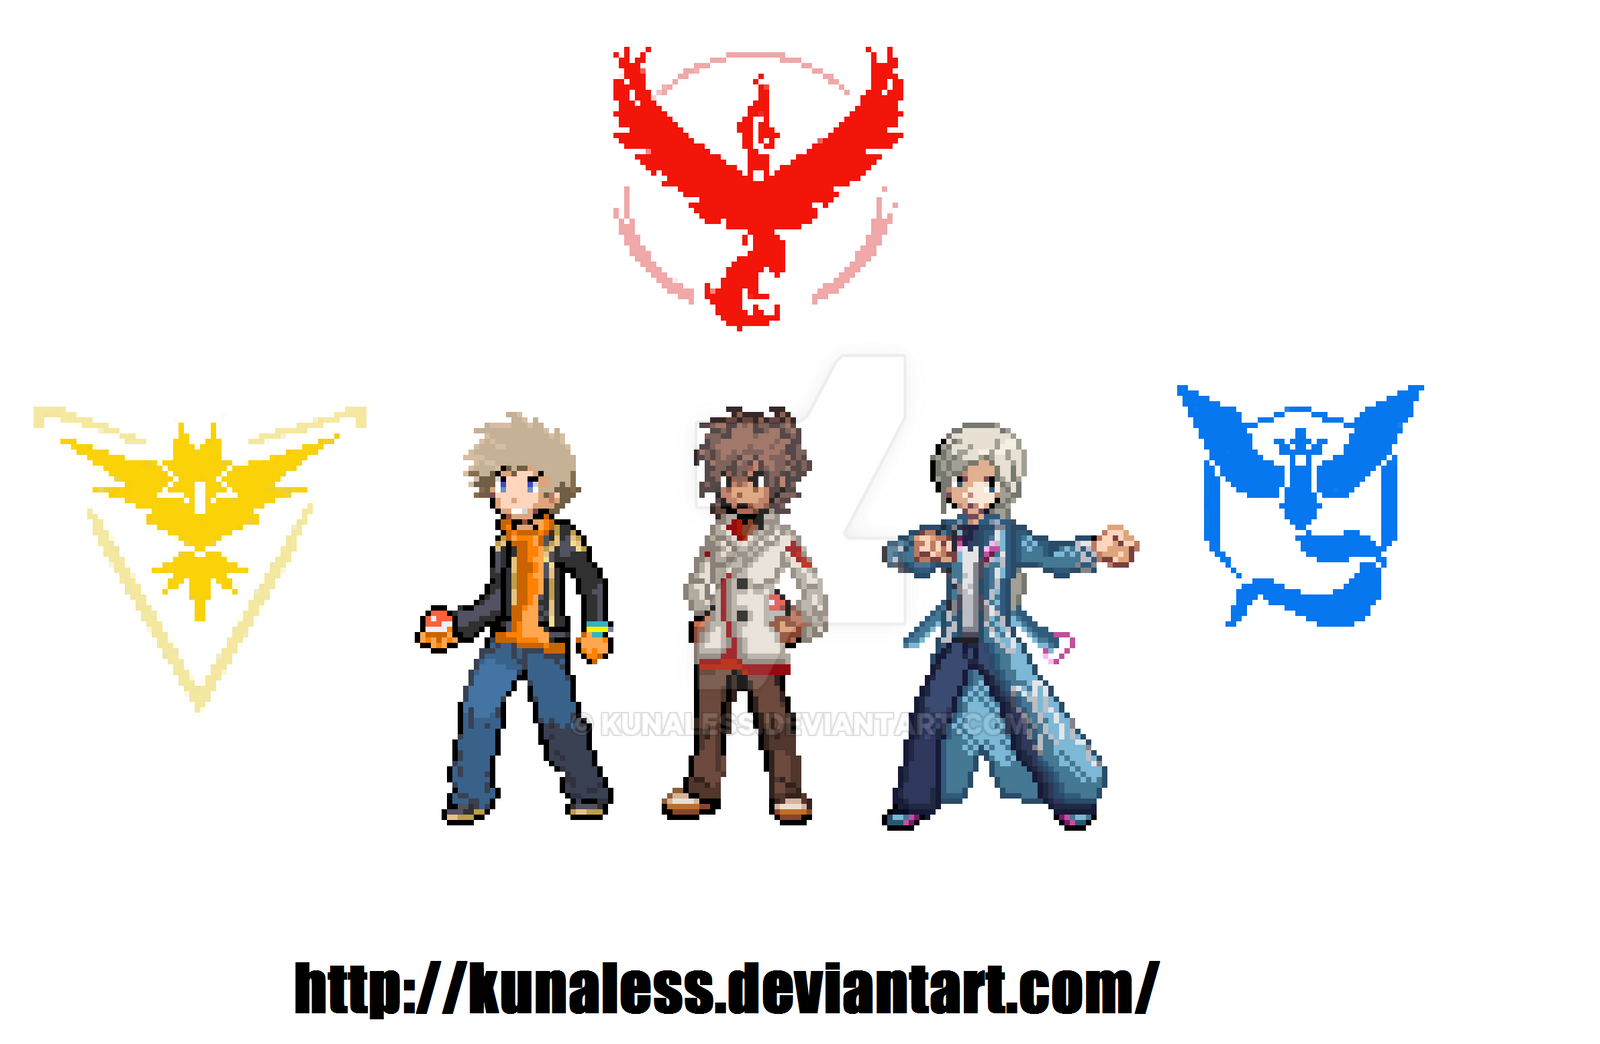 Pokemon Go Leaders Gba Style Pixel Art By Kunaless On Deviantart